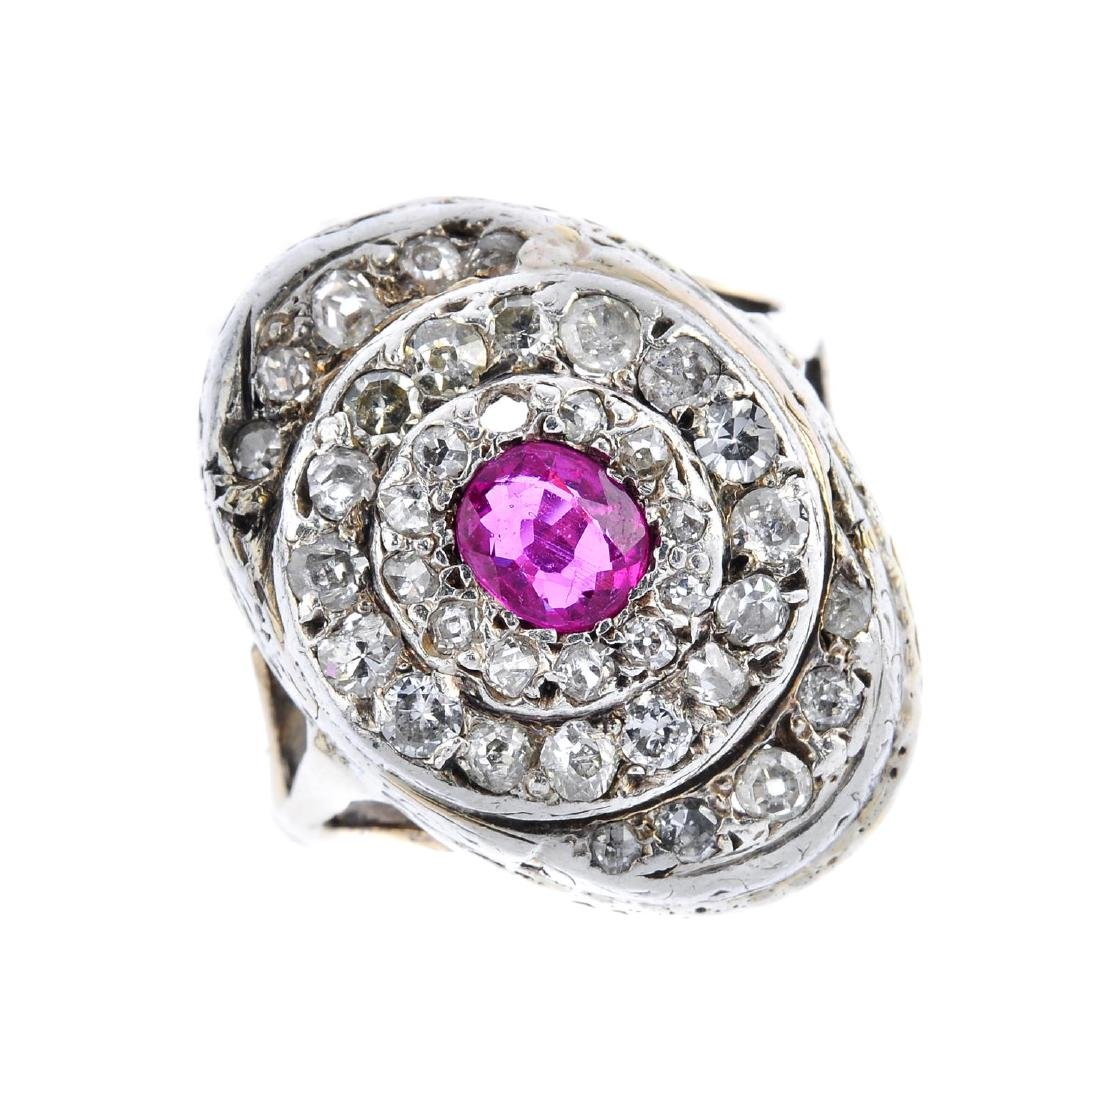 An early 20th century ruby and diamond ring. The